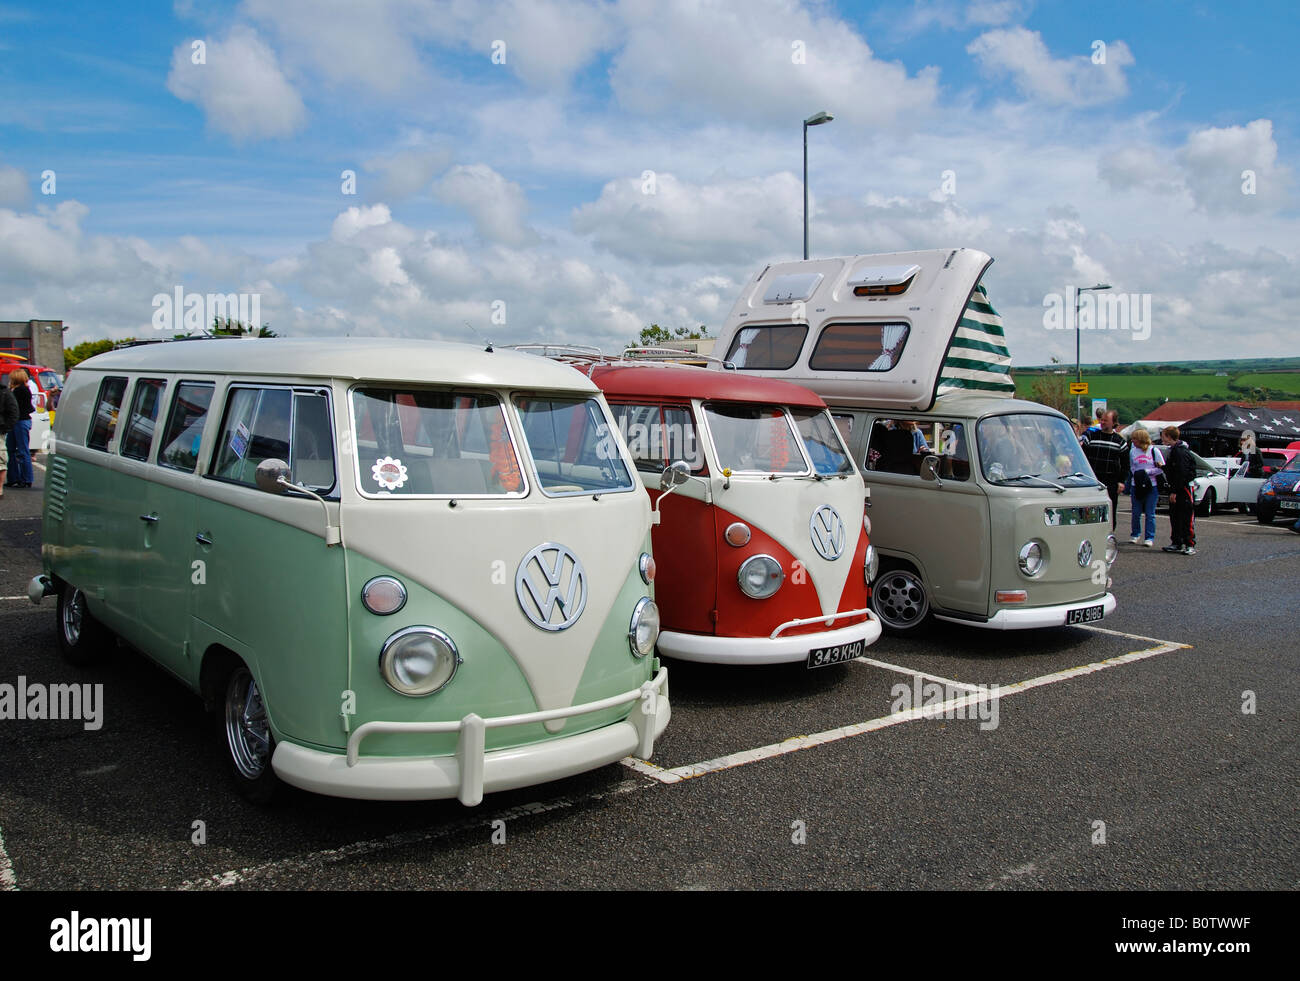 volkswagen caravanettes at the annual 'run to the sun' event at newquay in cornwall,england - Stock Image